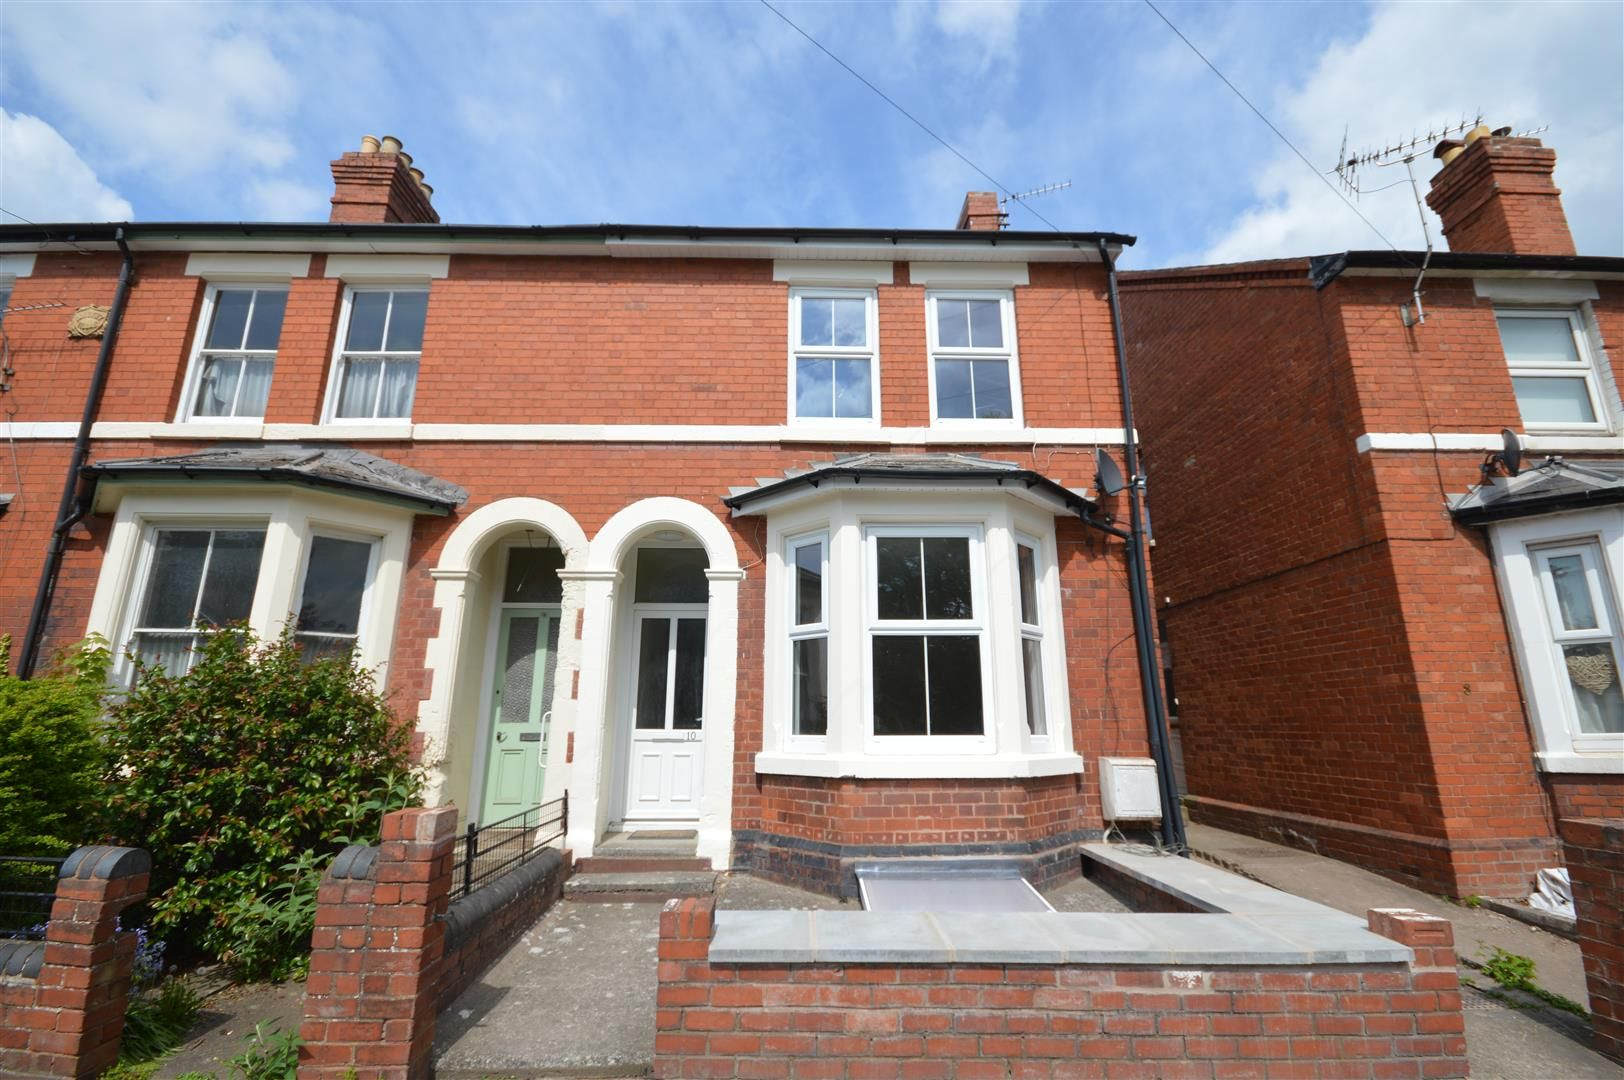 3 bed end of terrace for sale, HR4